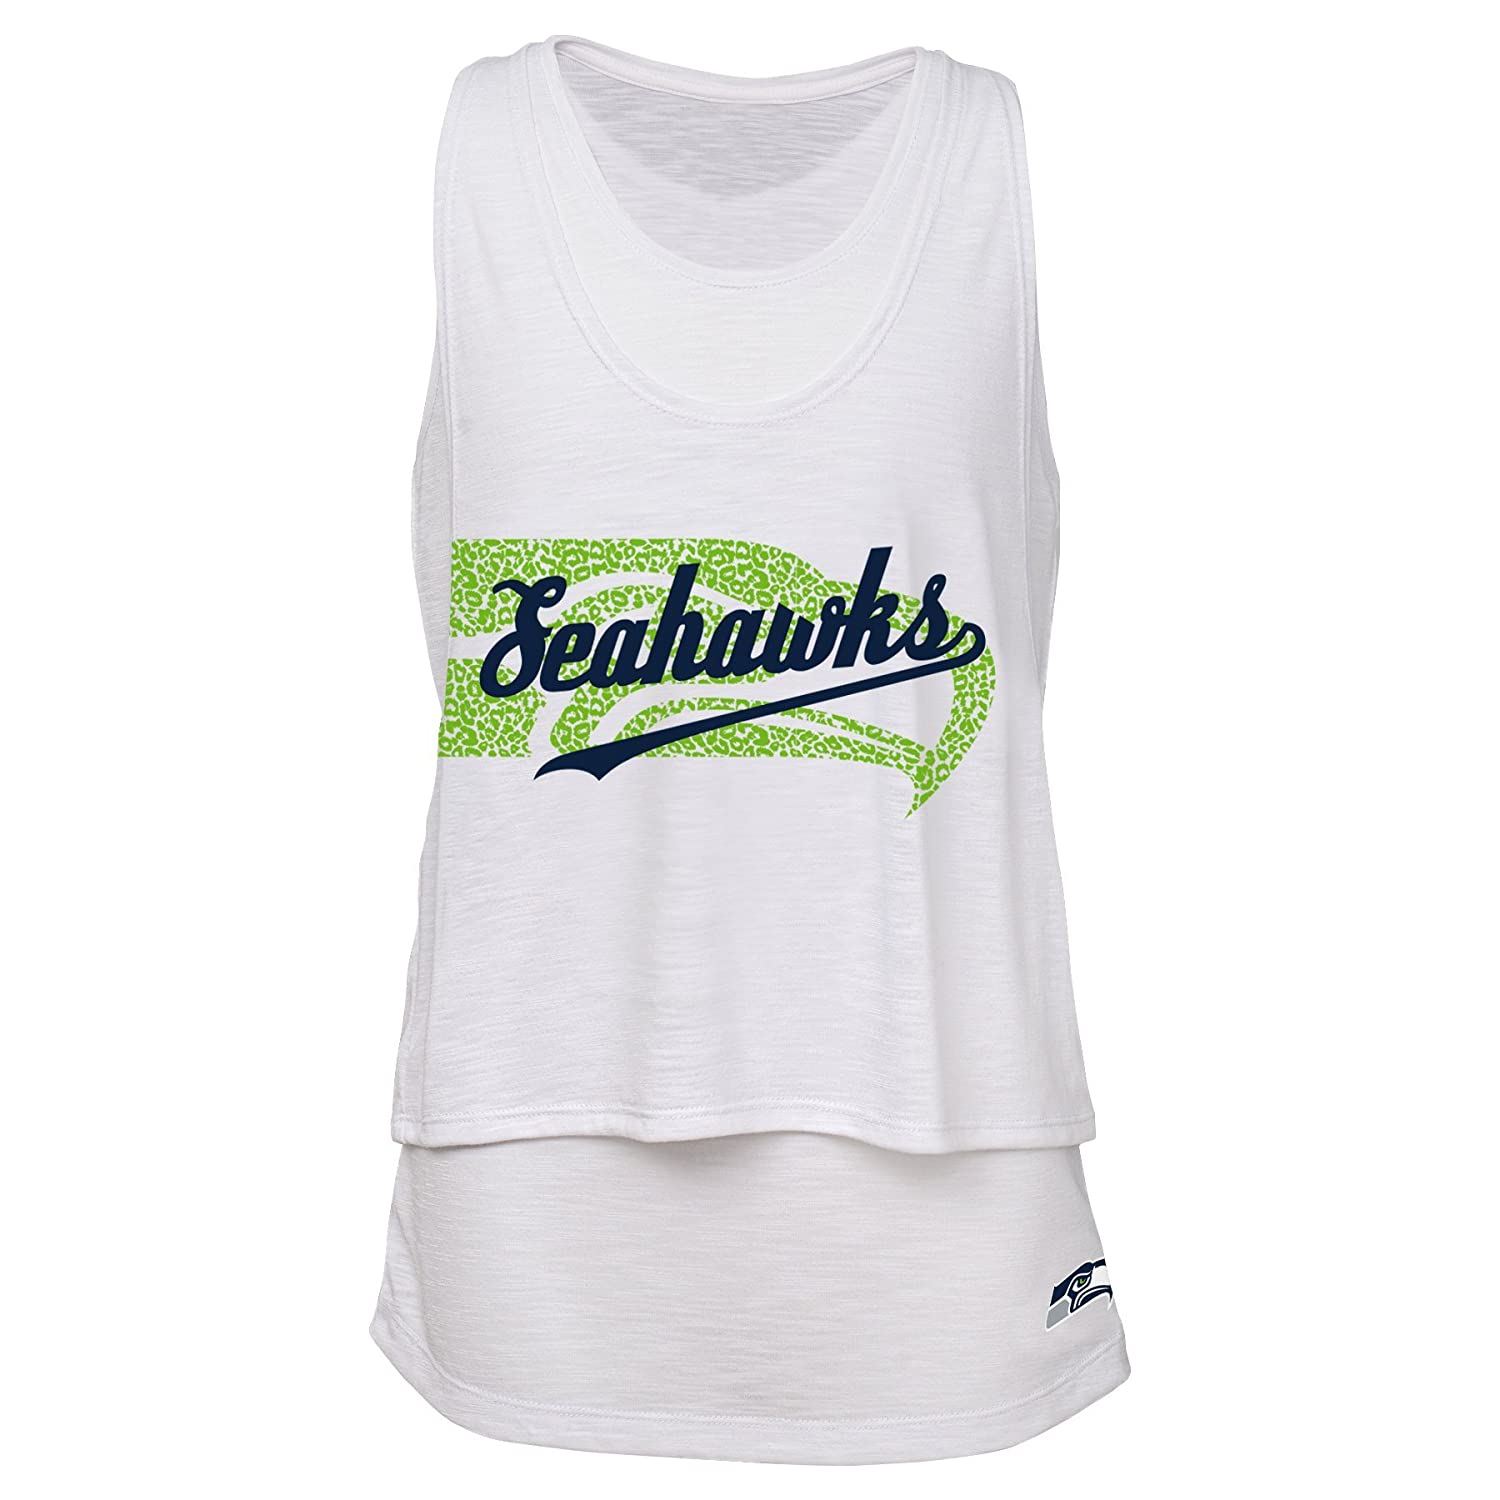 Outerstuff NFL Junior Girls Double Tier Layered Tank Top Seattle Seahawks 15-17 XL White